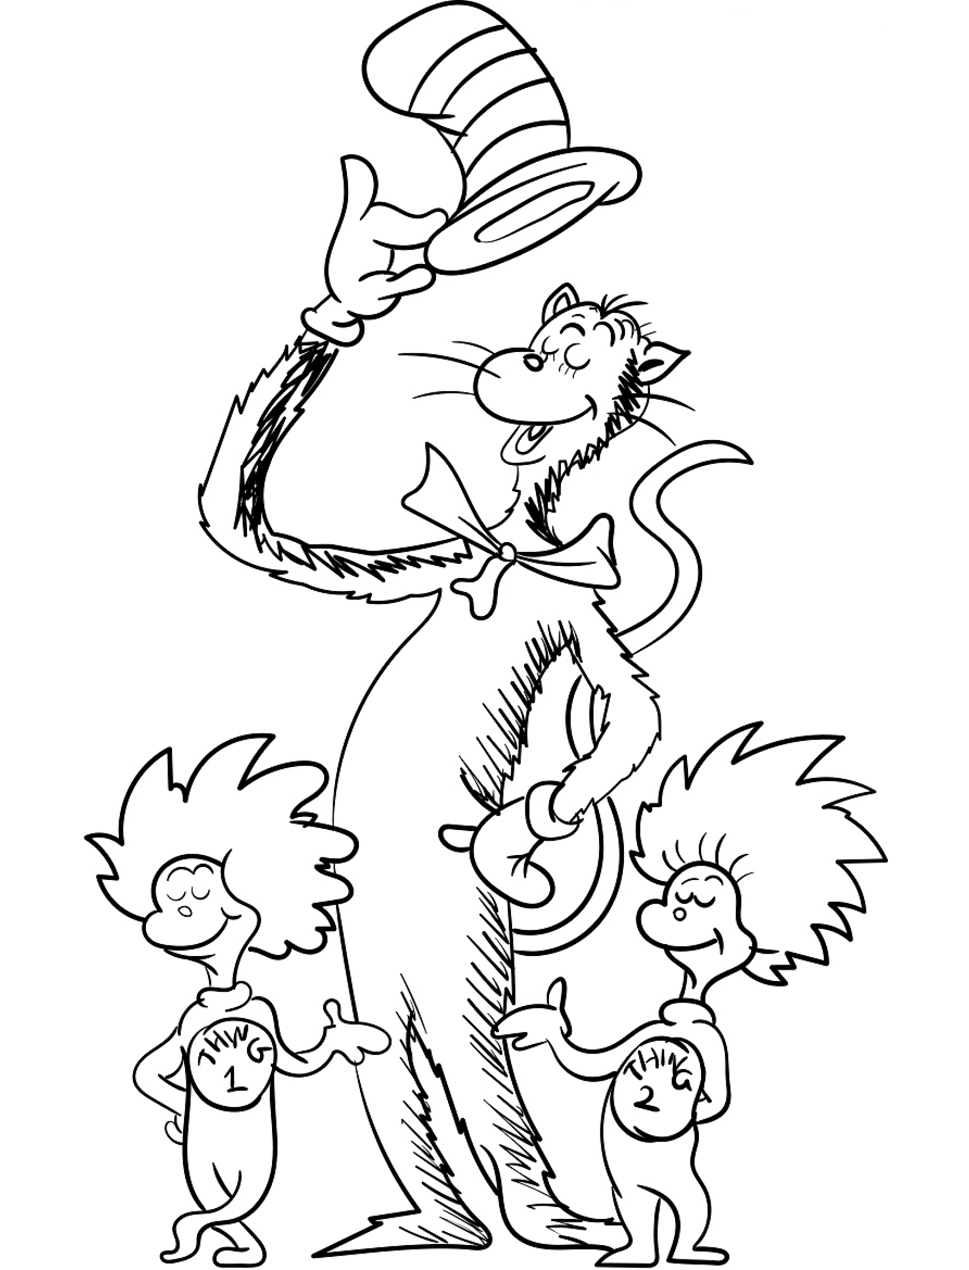 thing 1 and thing 2 coloring pages thing 1 and thing 2 roll and color dr seuss math seuss pages coloring thing 2 1 and thing